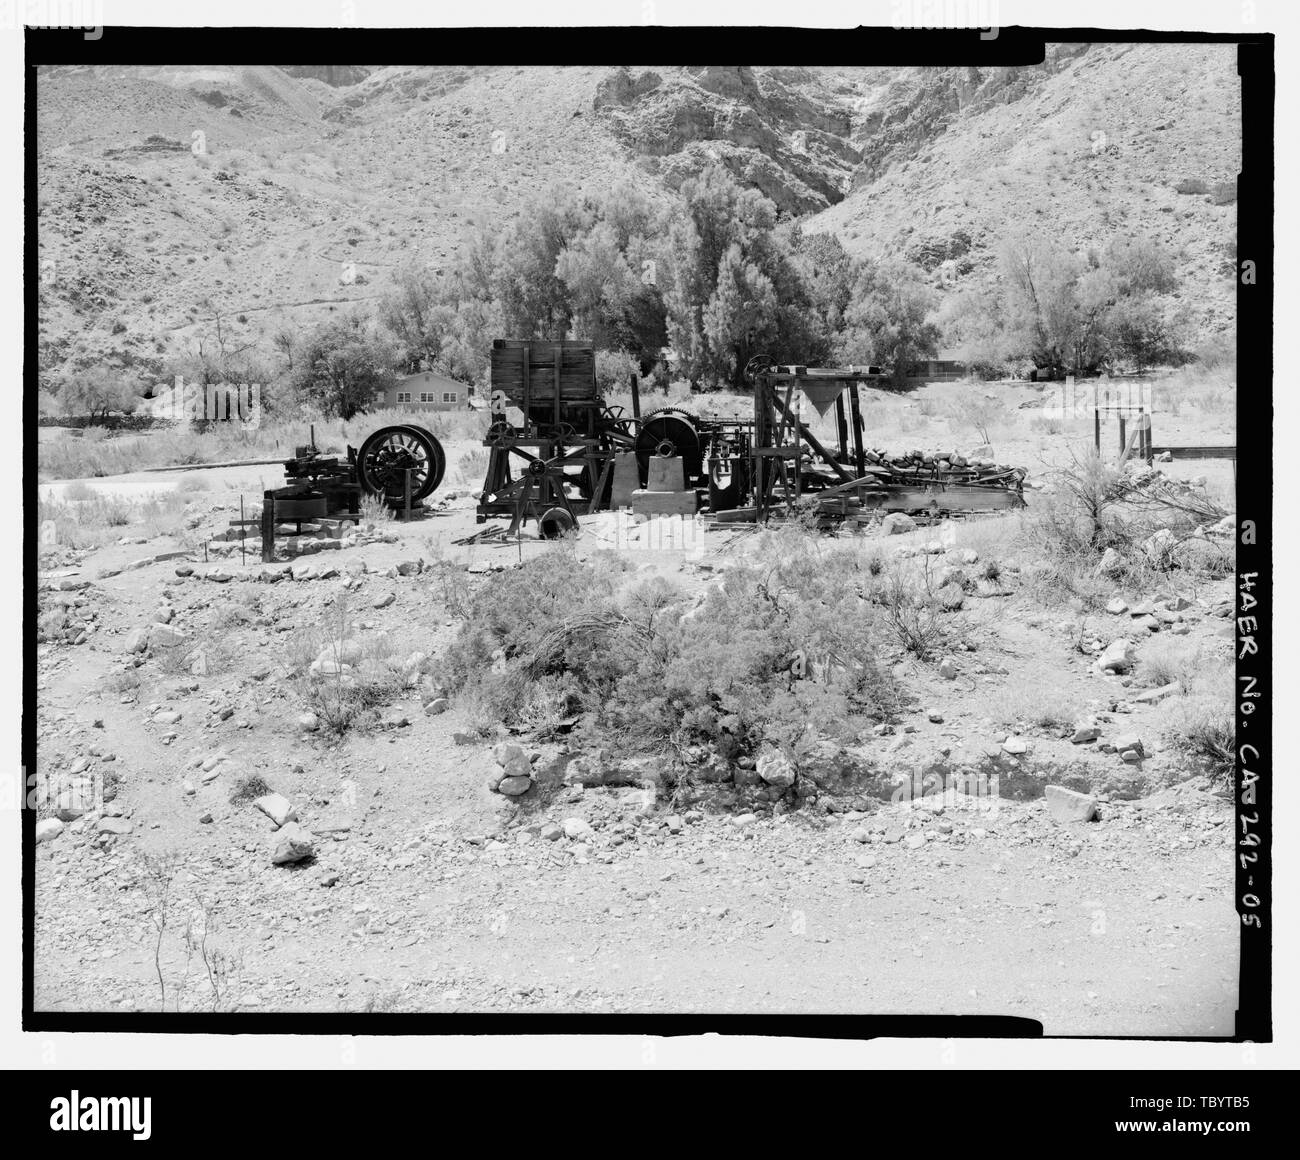 NORTH ELEVATION OF GOLD HILL MILL, LOOKING SOUTH, SHOWING RELATIONSHIP TO ROADWAY IN FOREGROUND.  Gold Hill Mill, Warm Spring Canyon Road, Death Valley Junction, Inyo County, CA - Stock Image